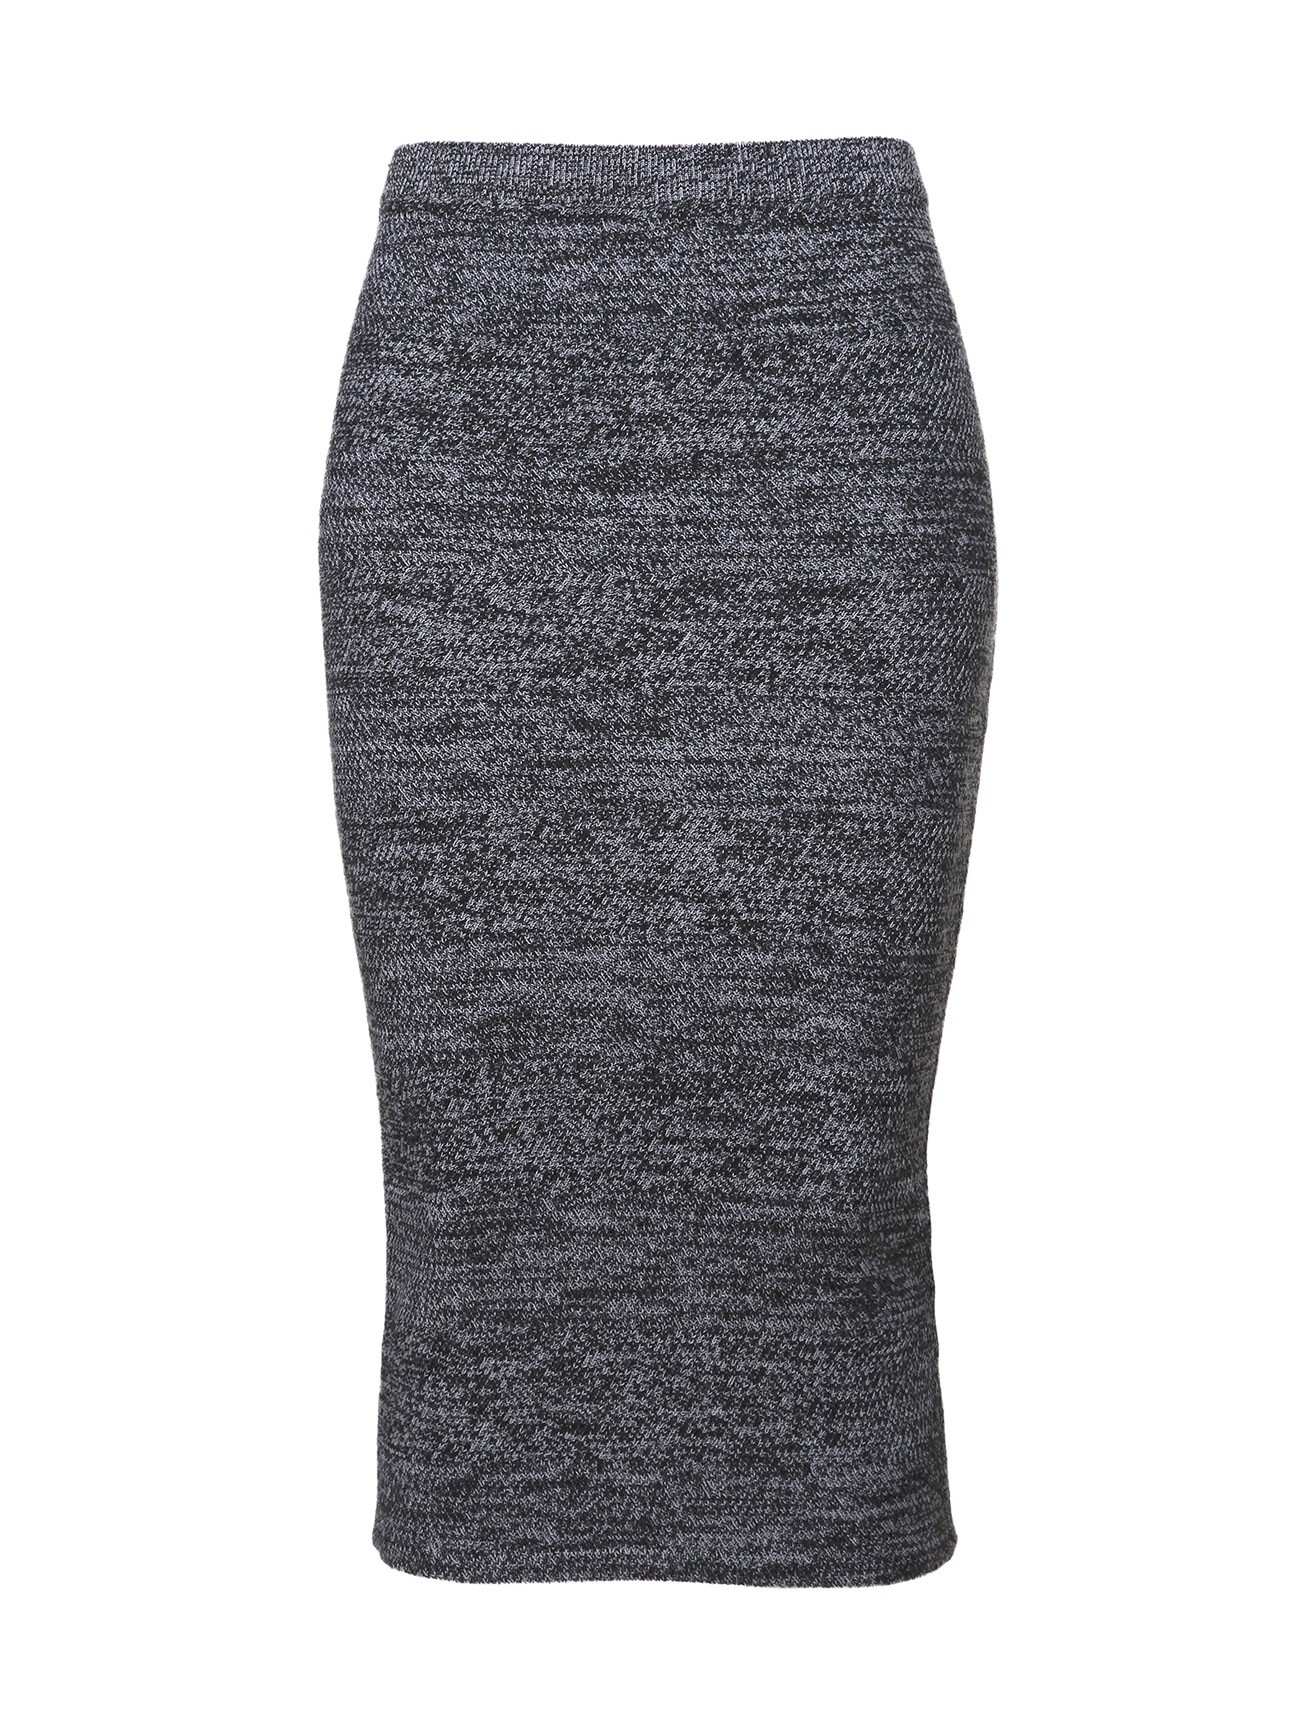 melange knit pencil skirt in gray charcoal